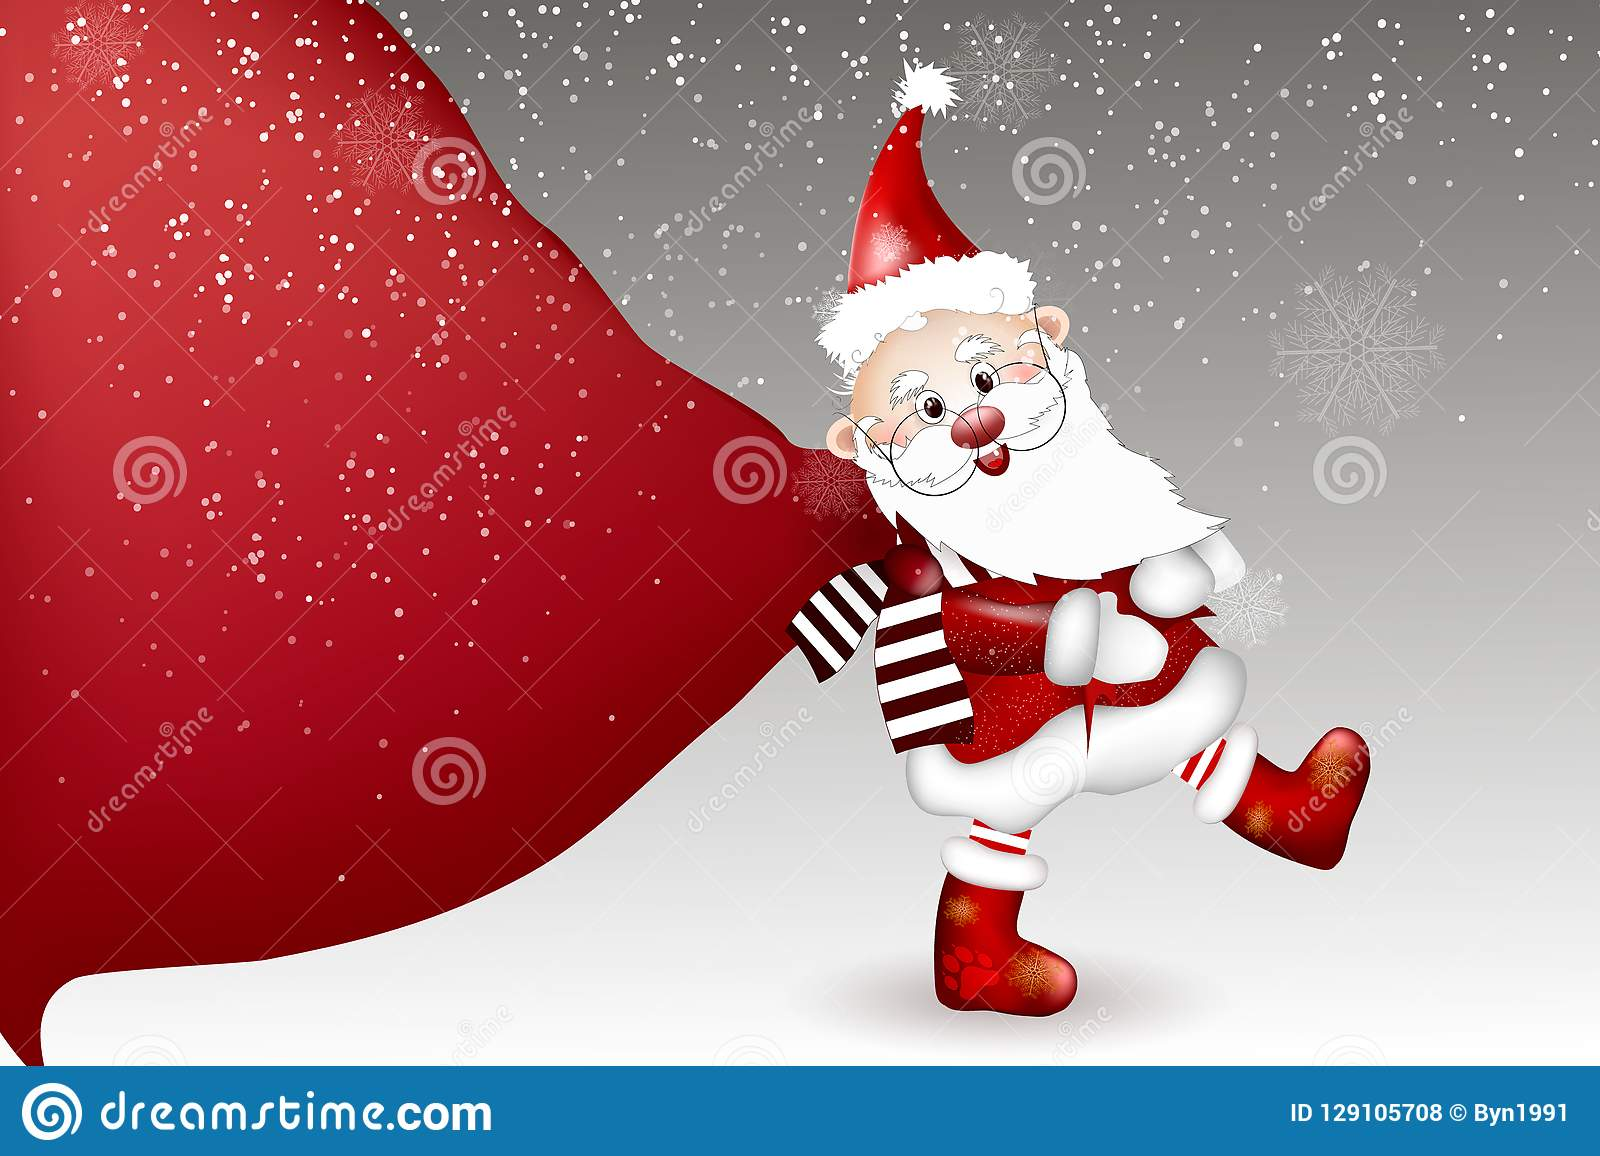 2bdde1c69d8b3 Cartoon Of Santa Claus On A White Background. Stock Vector ...